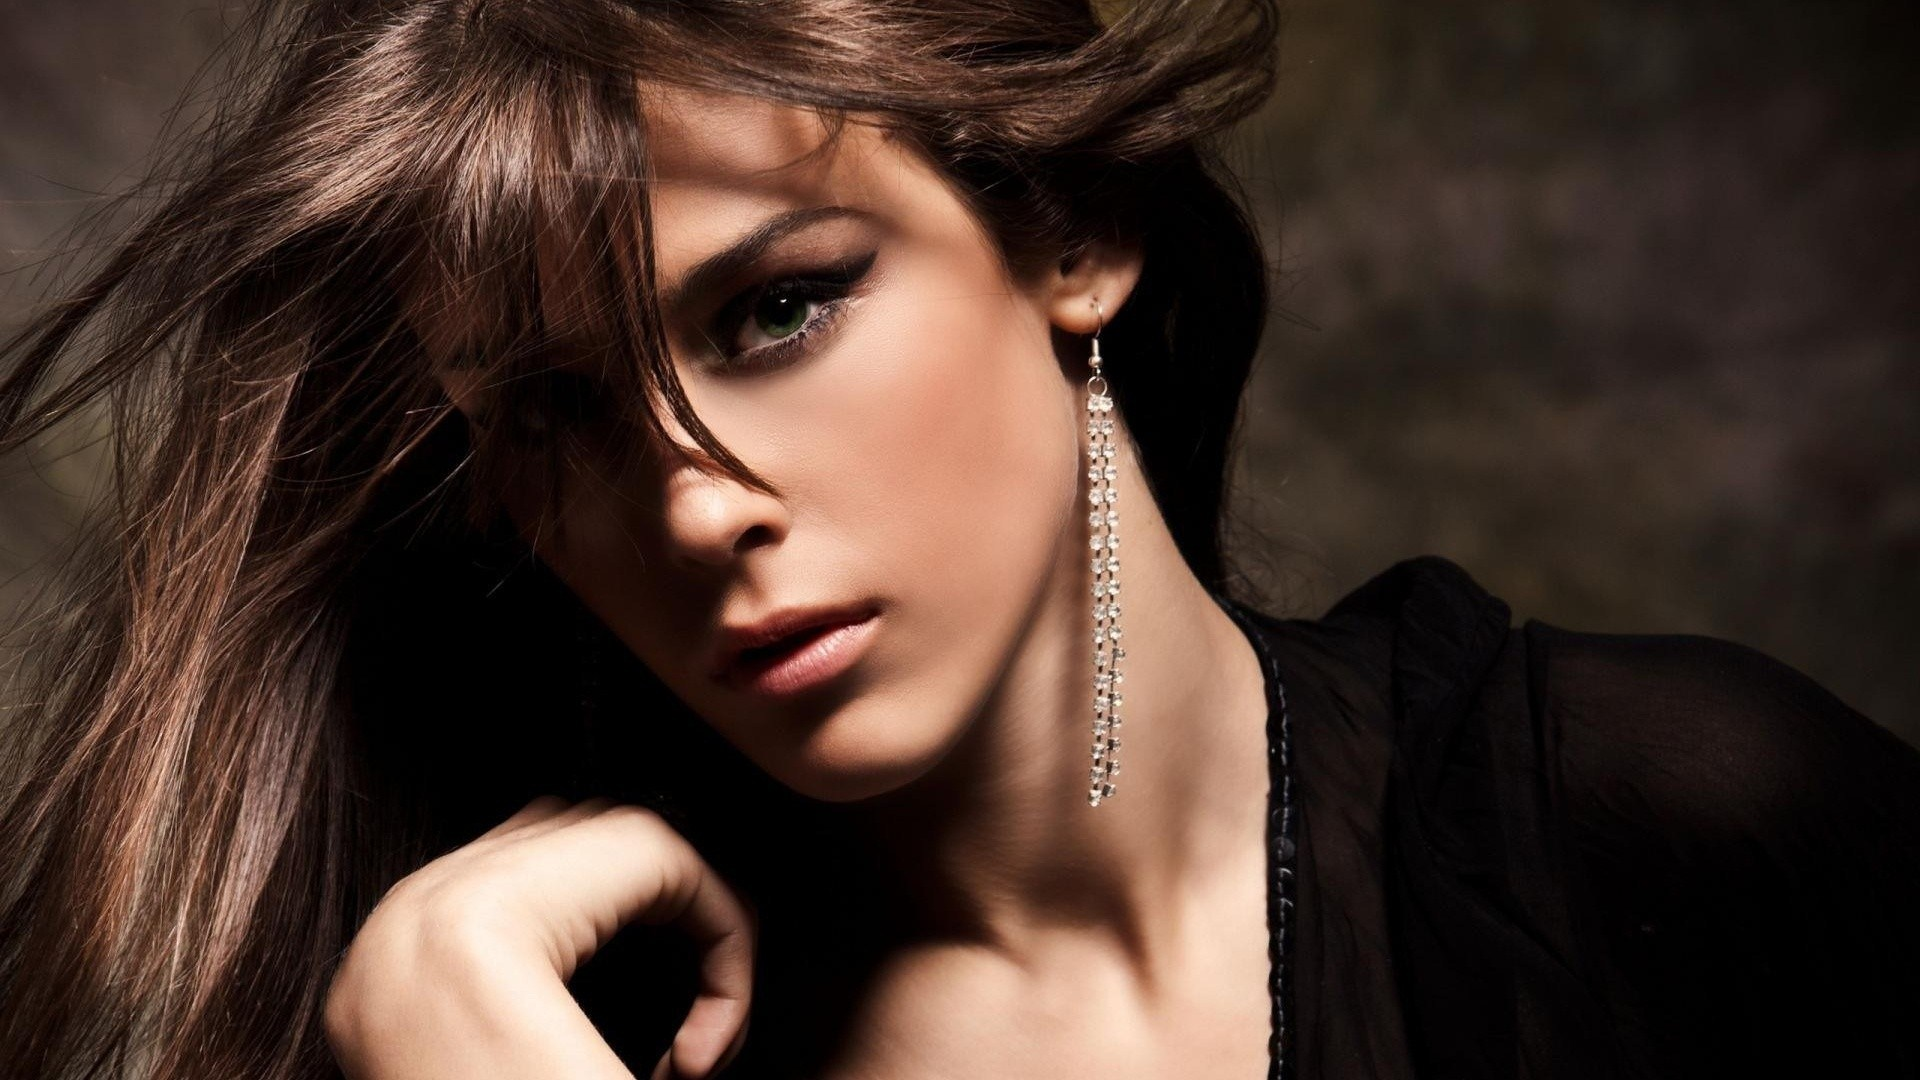 Earrings Beautiful Woman Fashion HD Wallpaper